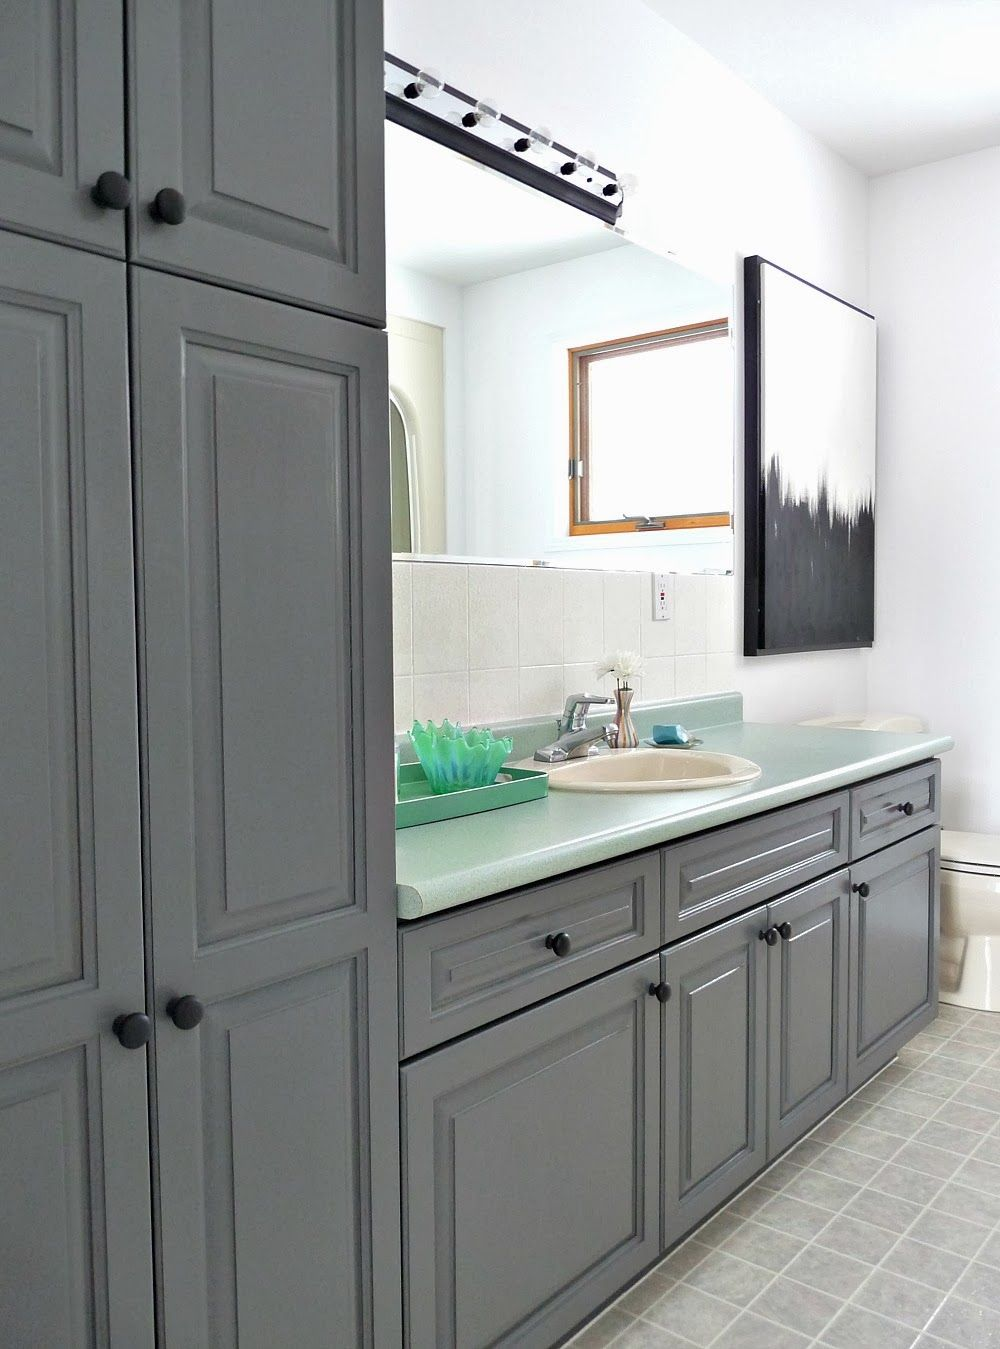 charocoal painted bathroom cabinets rustoleum cabinet charocoal painted bathroom cabinets rustoleum cabinet transformations with almond sink toilet mint